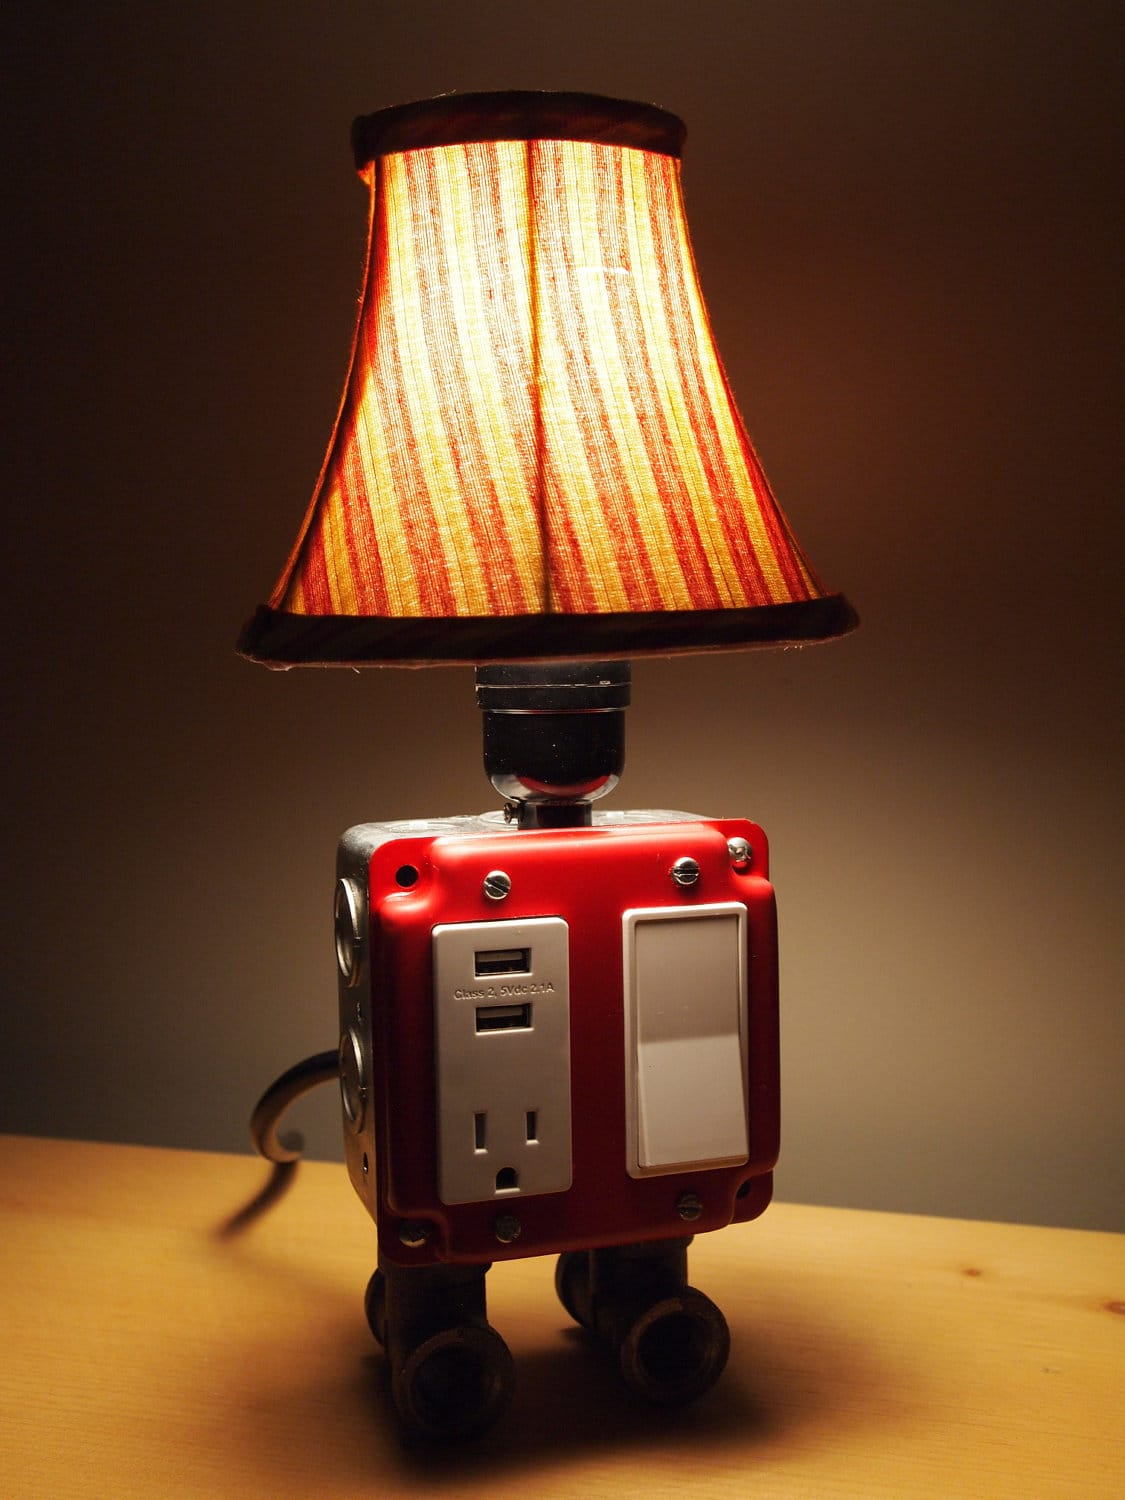 Cool Electrical Outlets Gadget Charger Table Lamps For A True Geek 39s Living Quarters